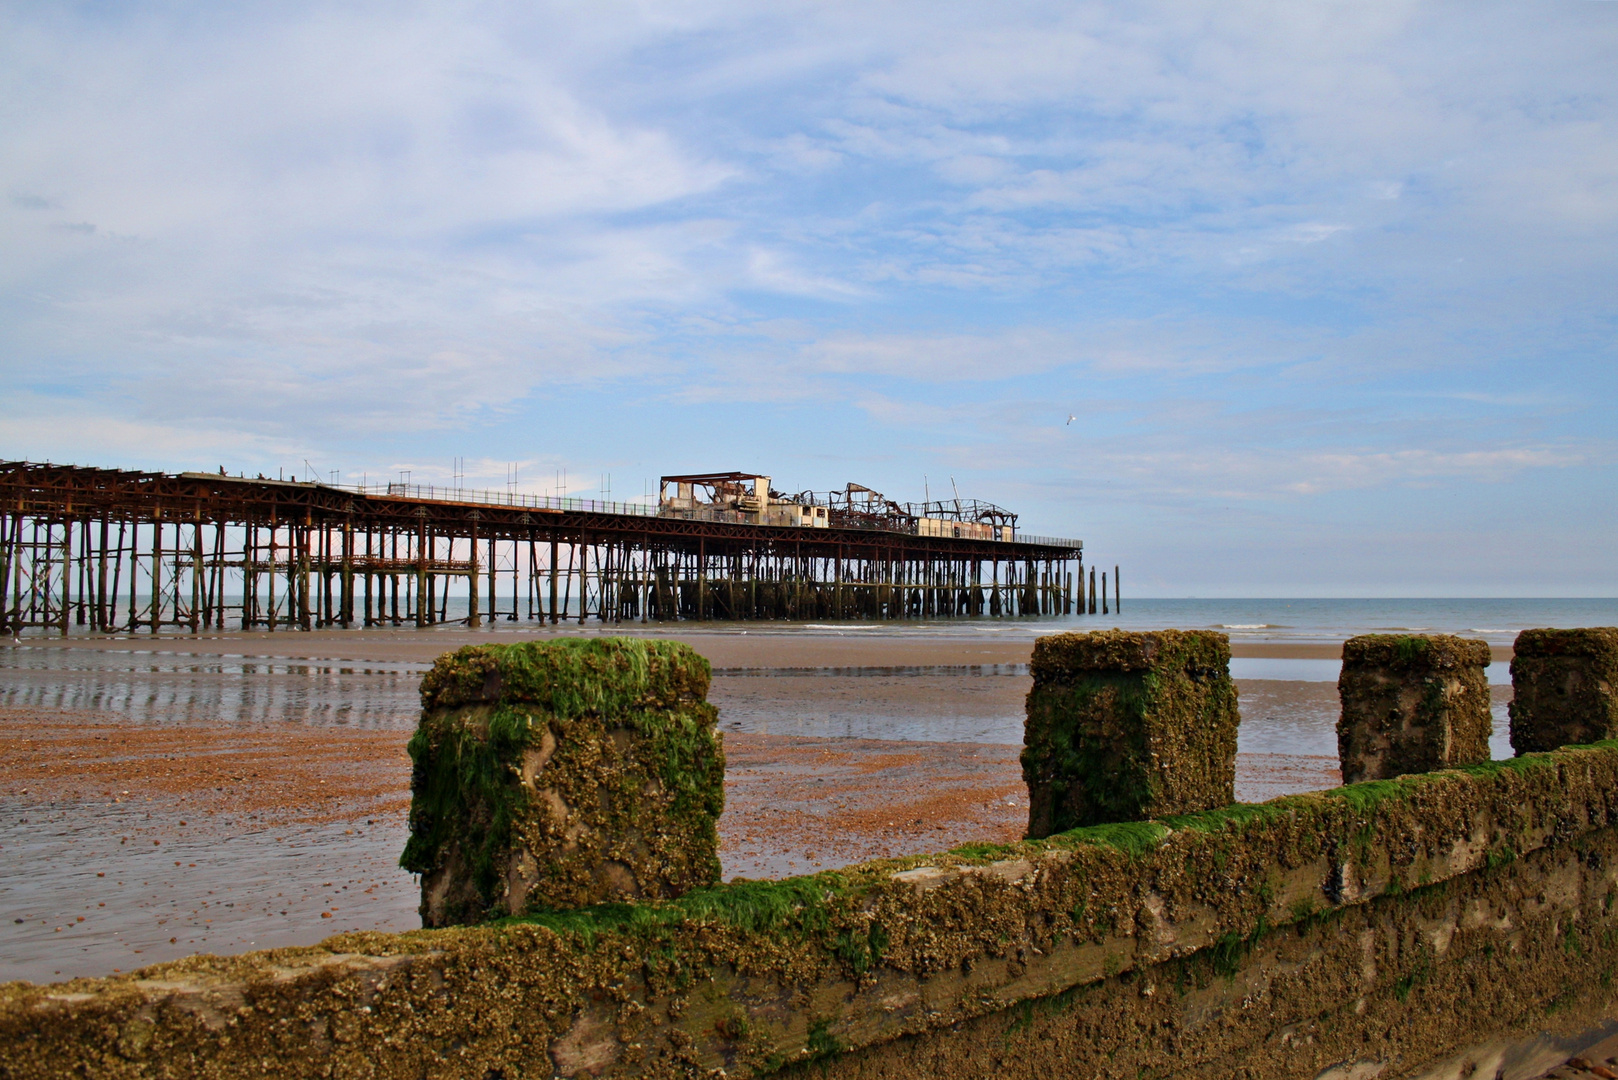 Abgebranntes Pier in Hastings